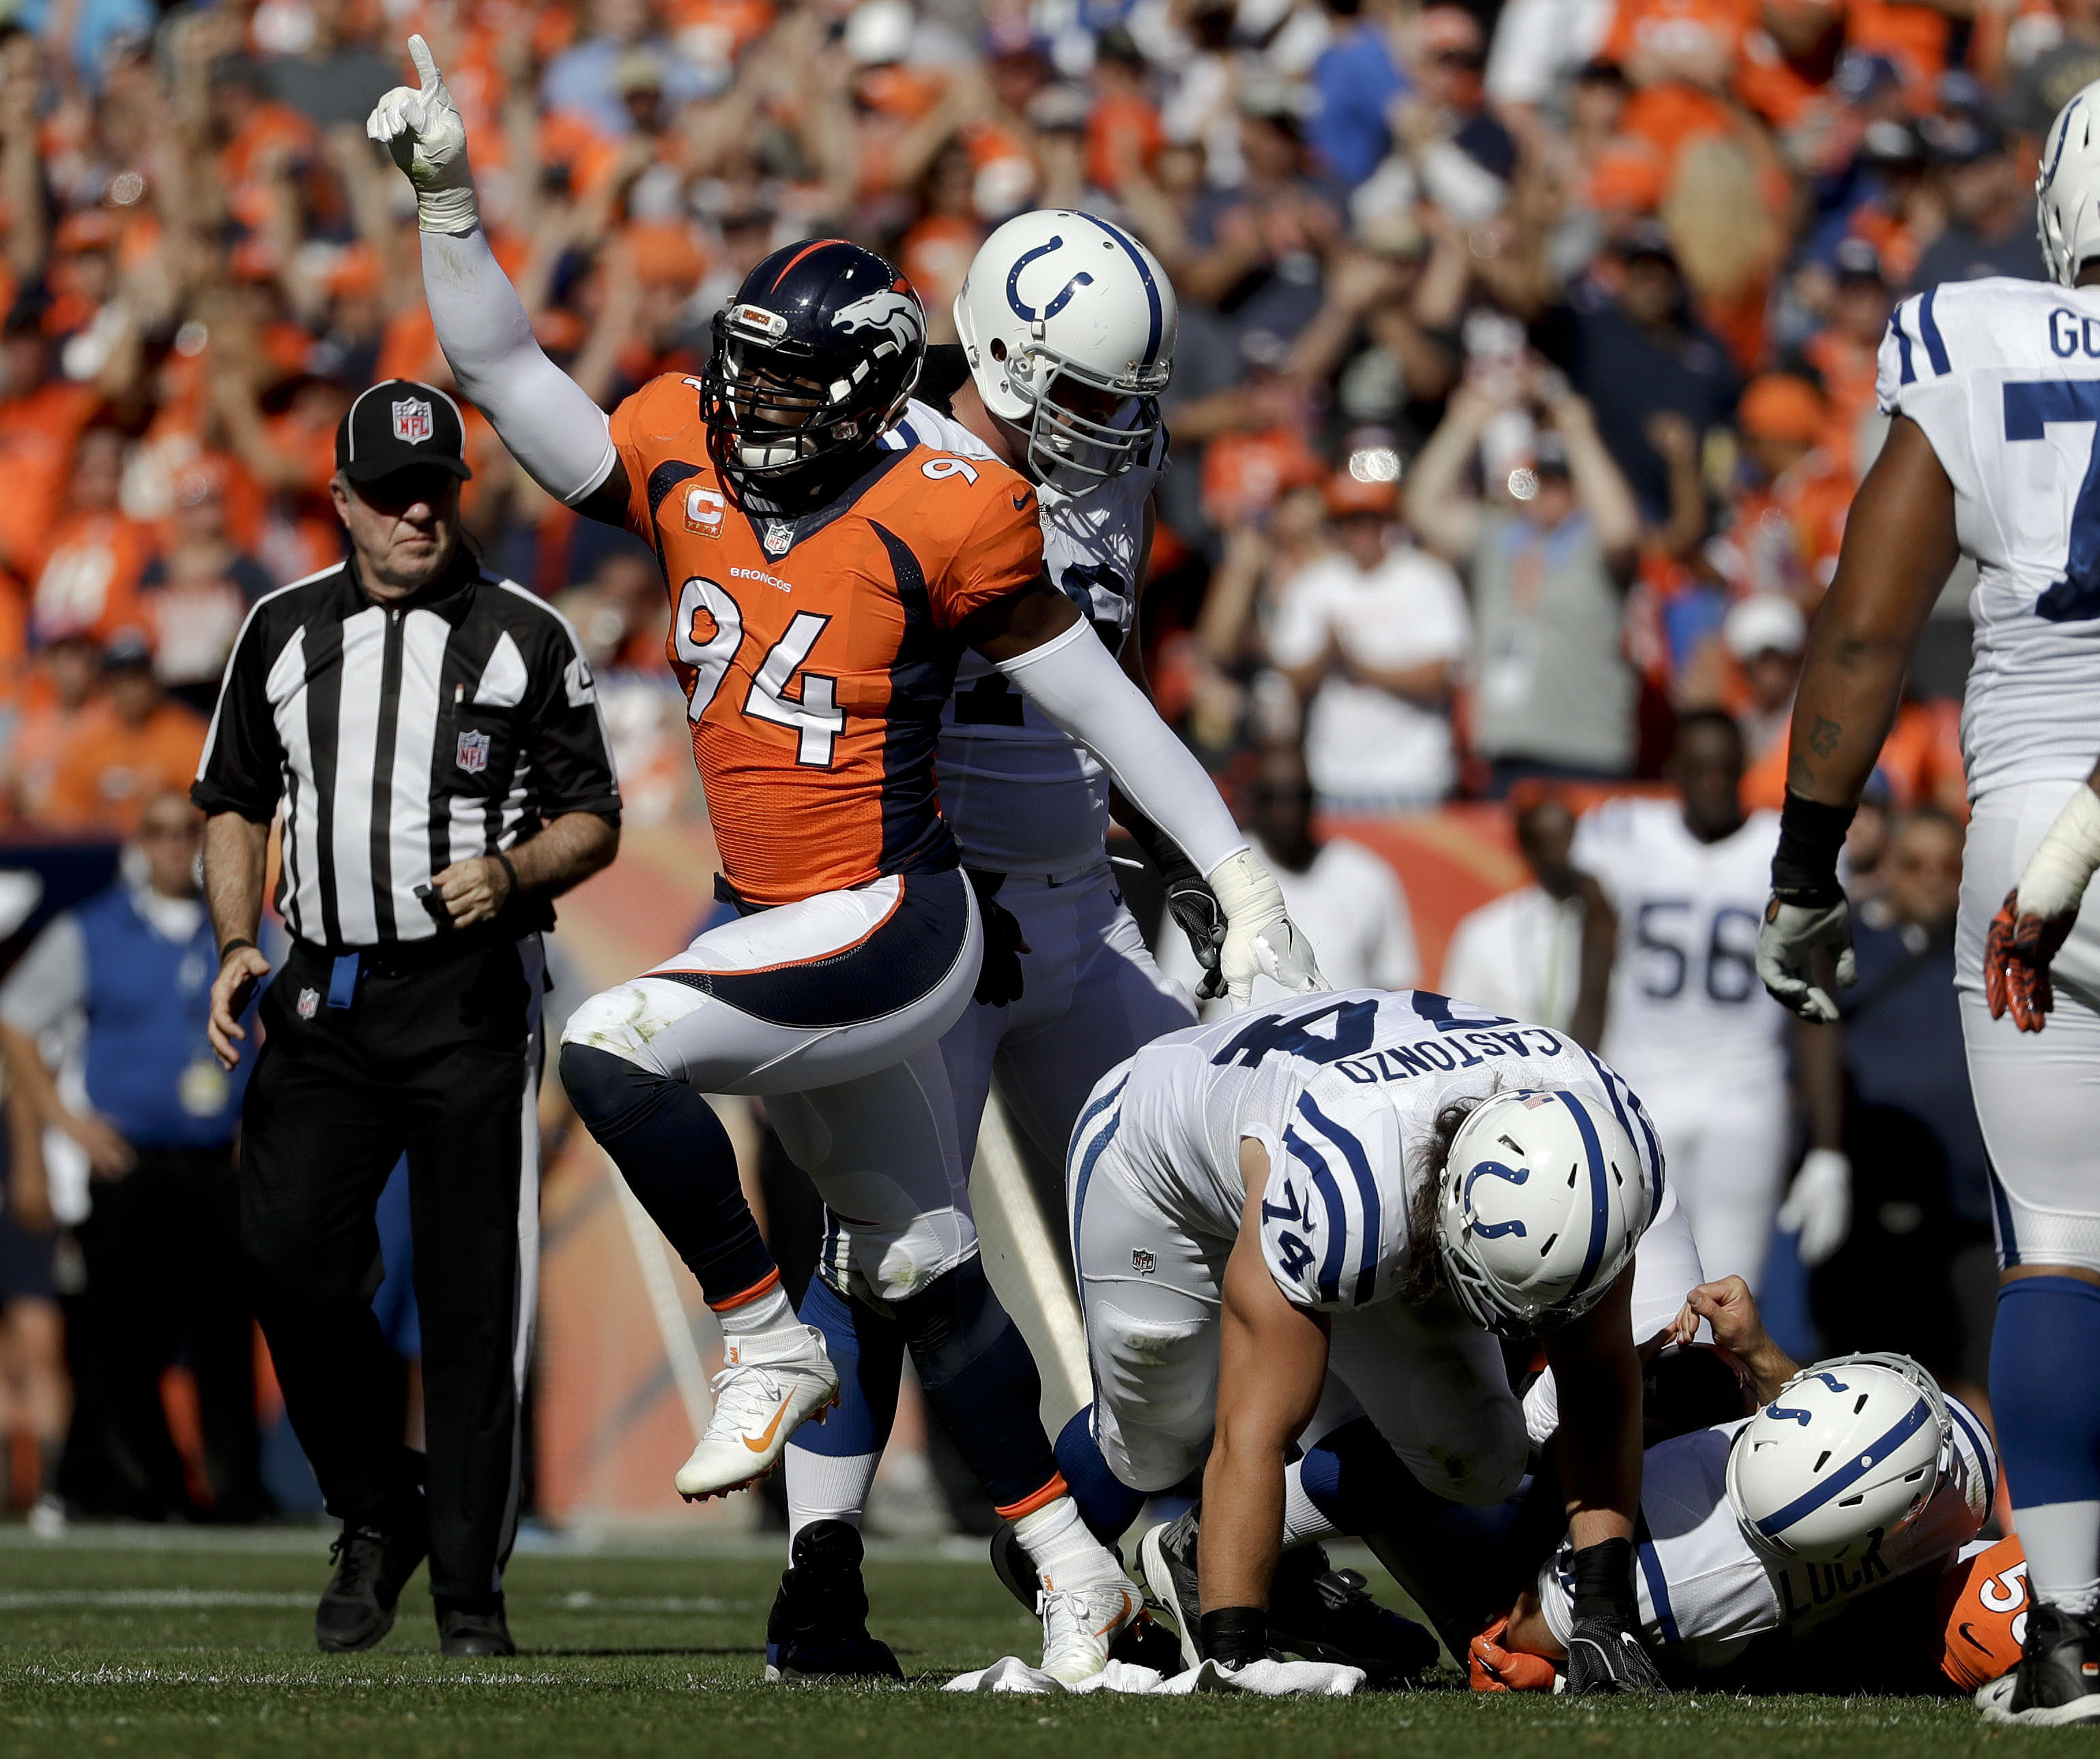 Denver Broncos outside linebacker DeMarcus Ware, left, celebrates after sacking Indianapolis Colts quarterback Andrew Luck during the first half in a NFL football game, Sunday, Sept. 18, 2016, in Denver. (AP Photo/Jack Dempsey)